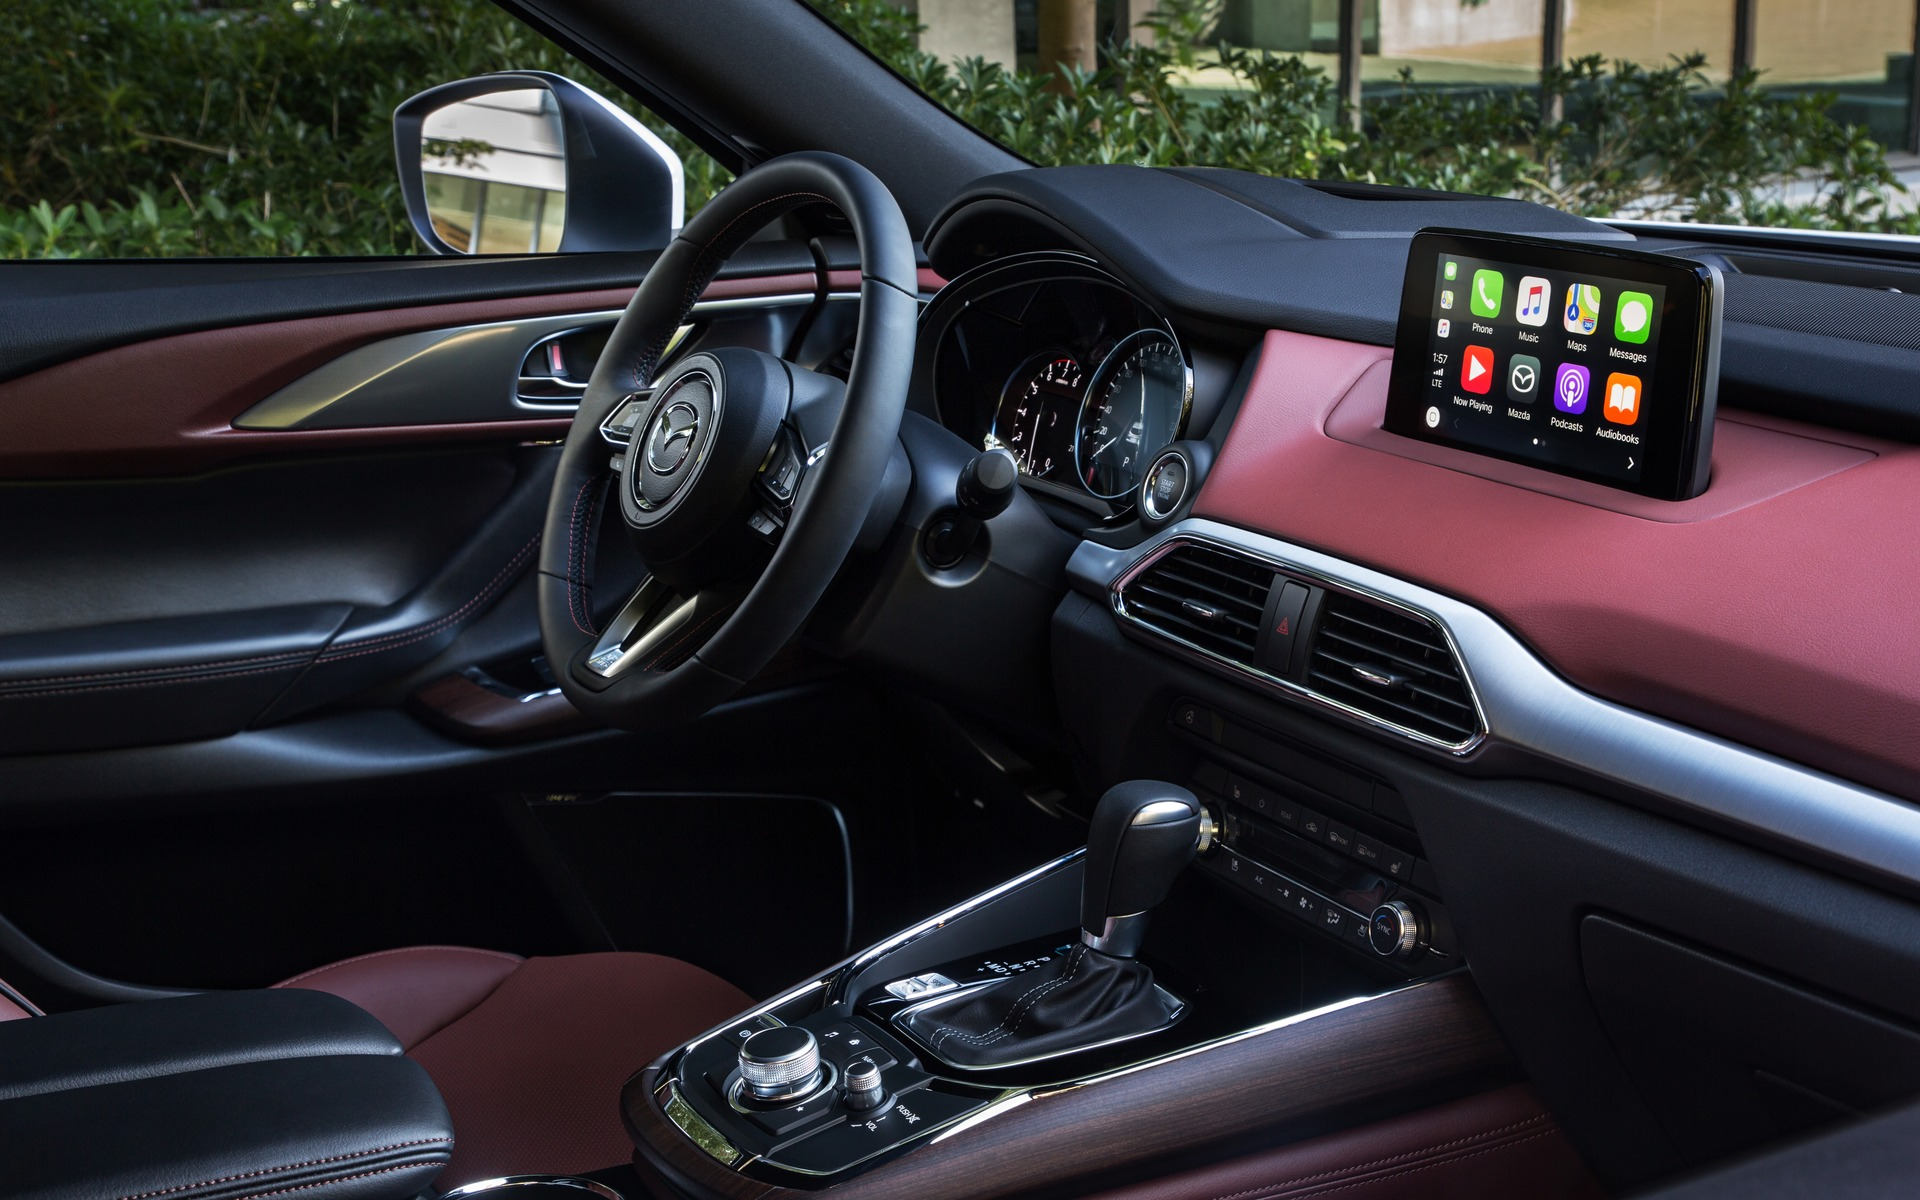 Apple Carplay And Android Auto Coming To A Mazda Vehicle Near You